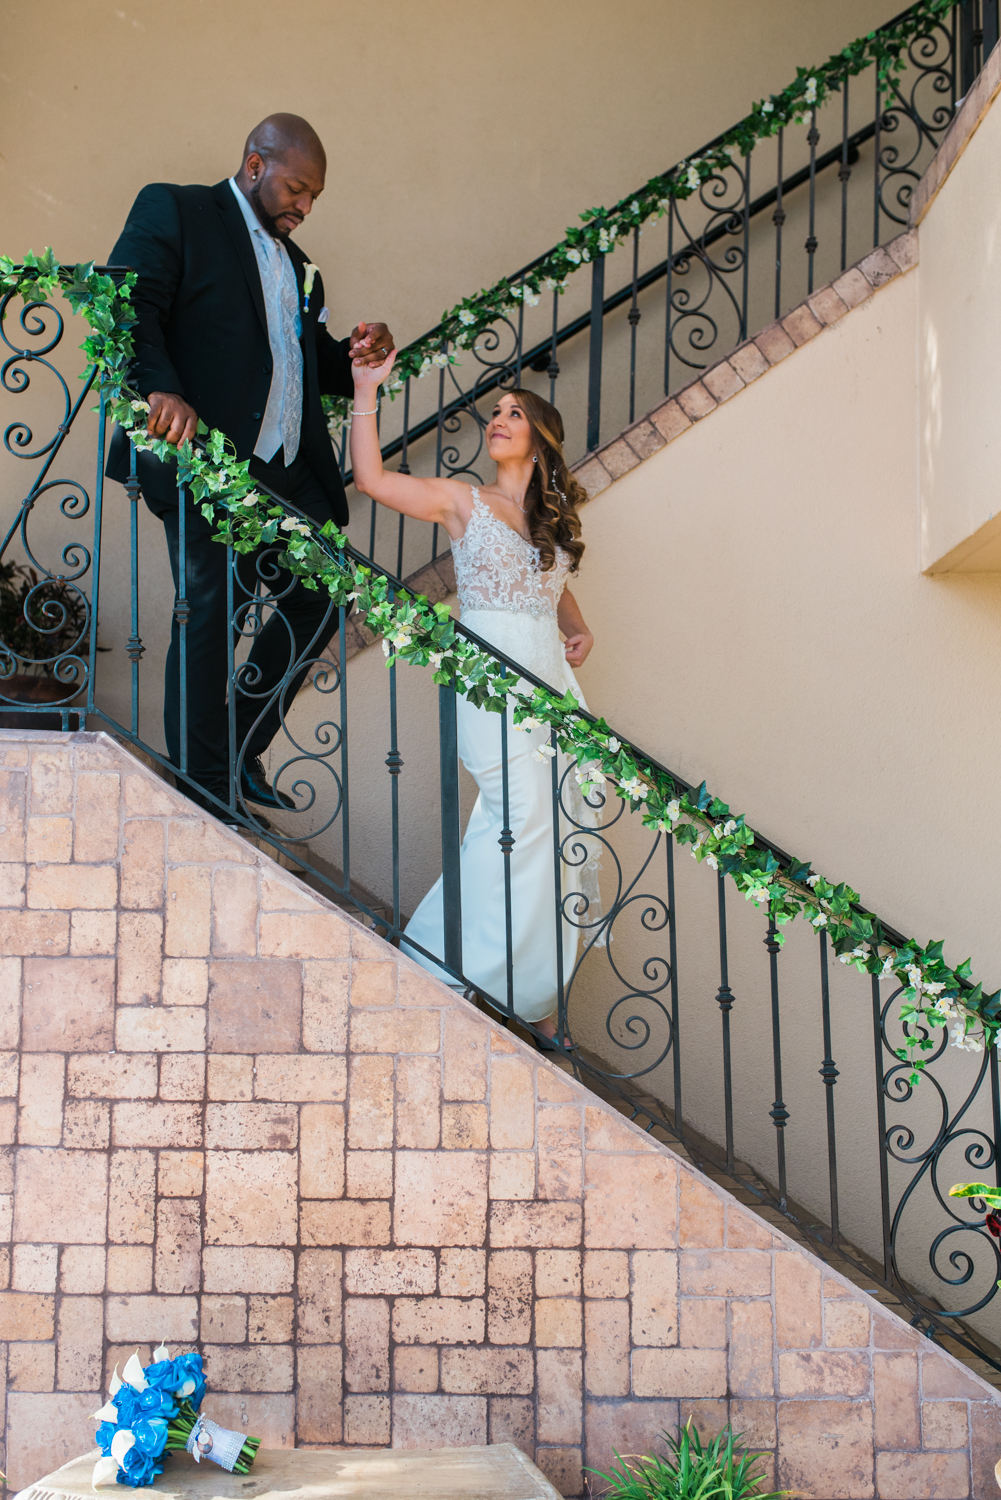 orlando wedding photographer rania marie photo-4.jpg